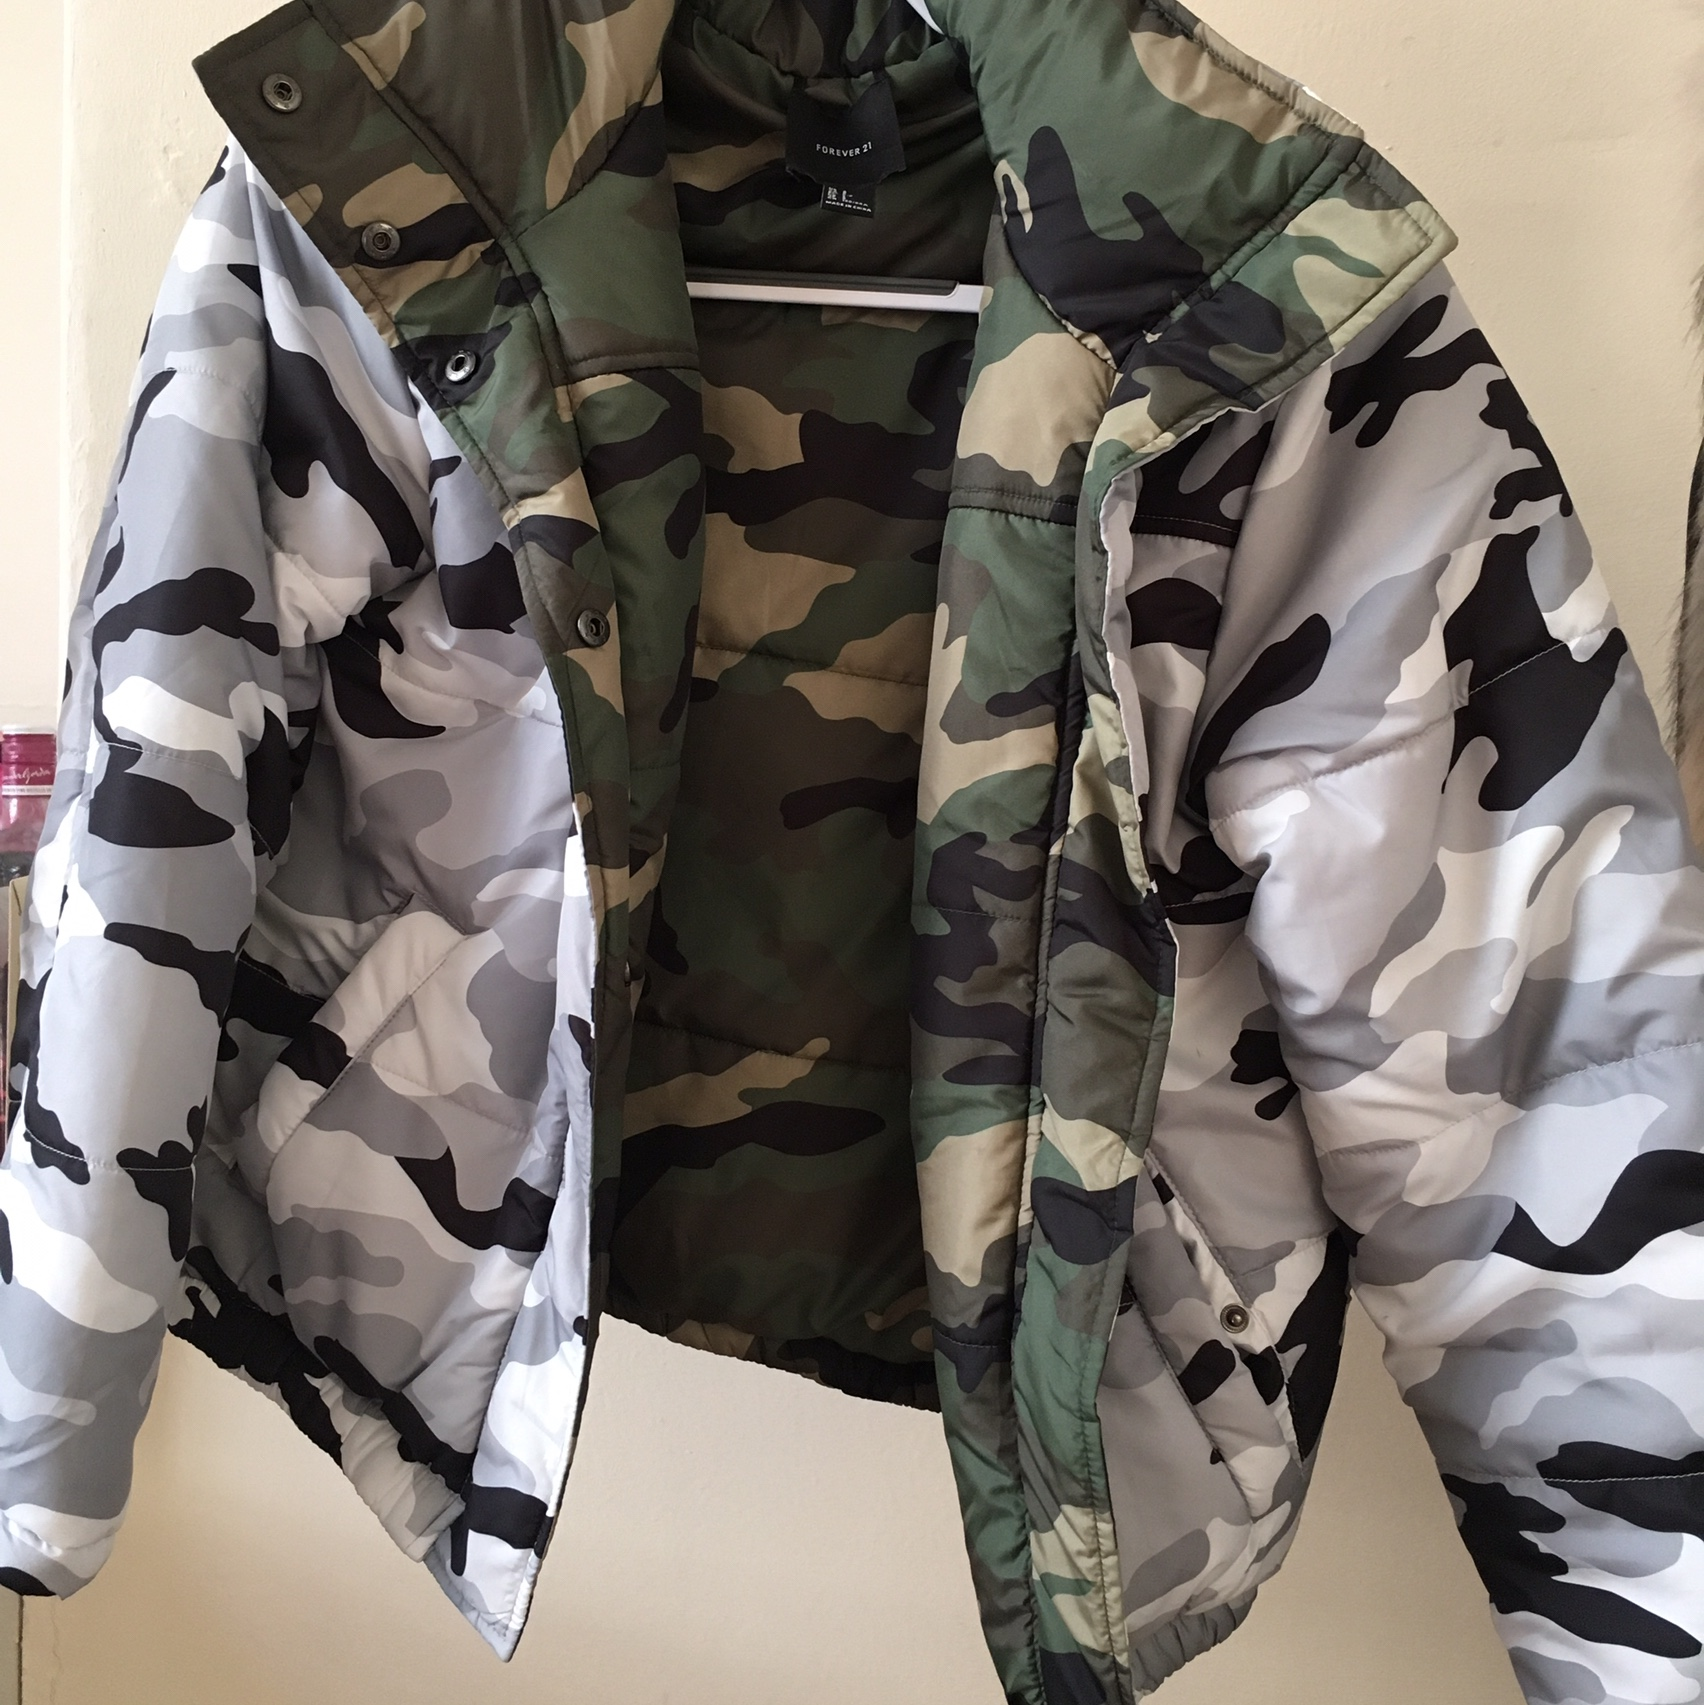 d21008cfa Reversible camo puffer jacket. Only worn once... - Depop